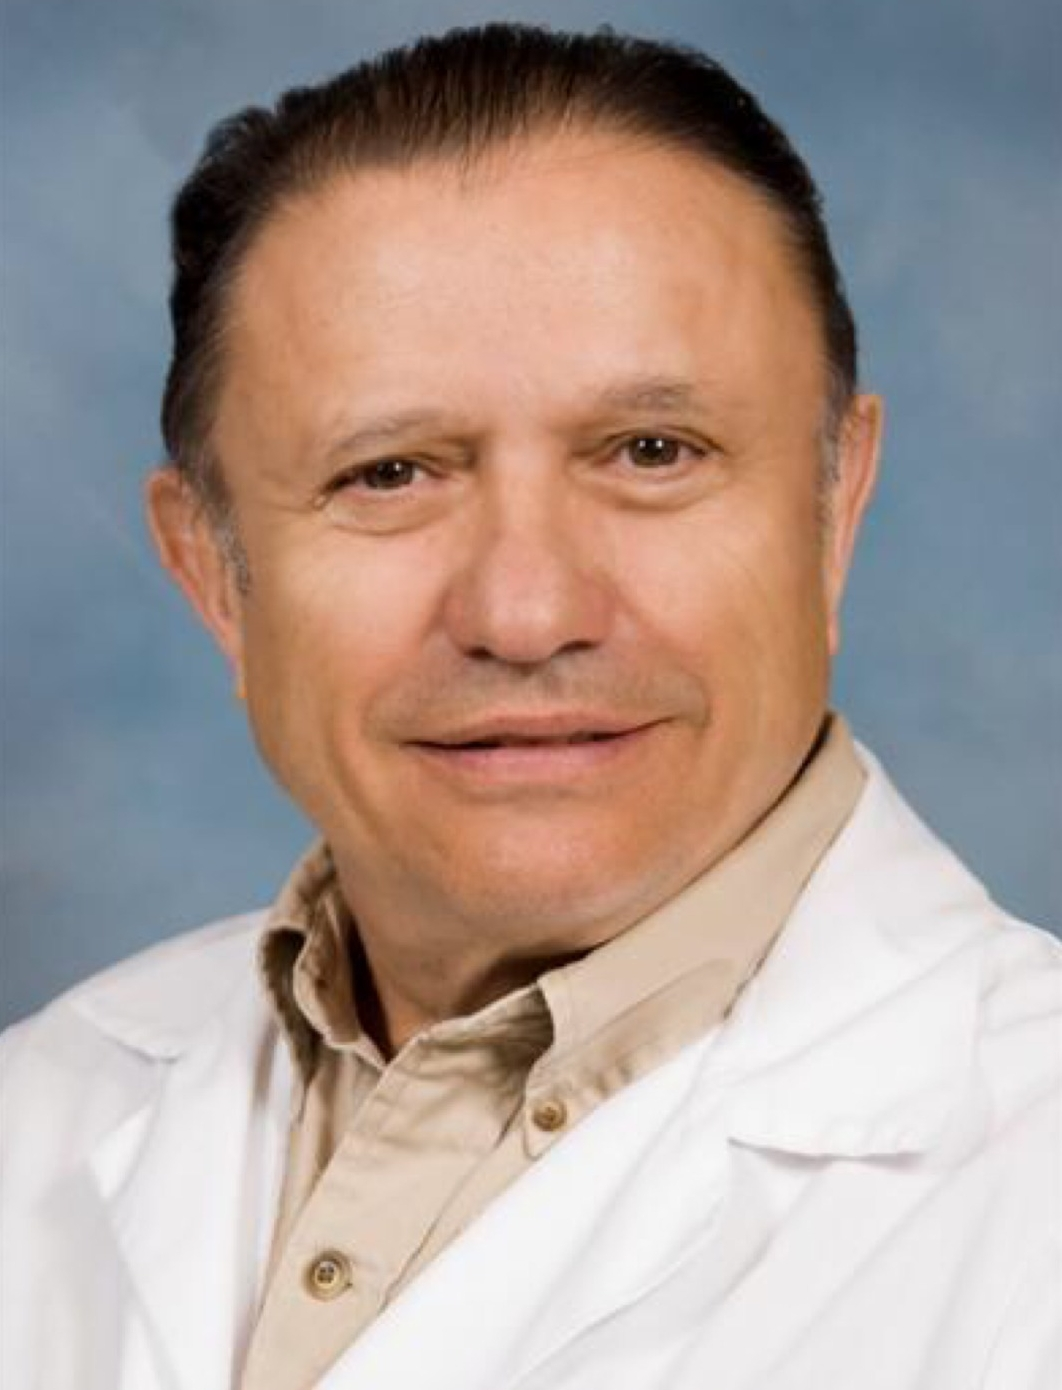 Karel Raska, M.D., Ph.D. Photo